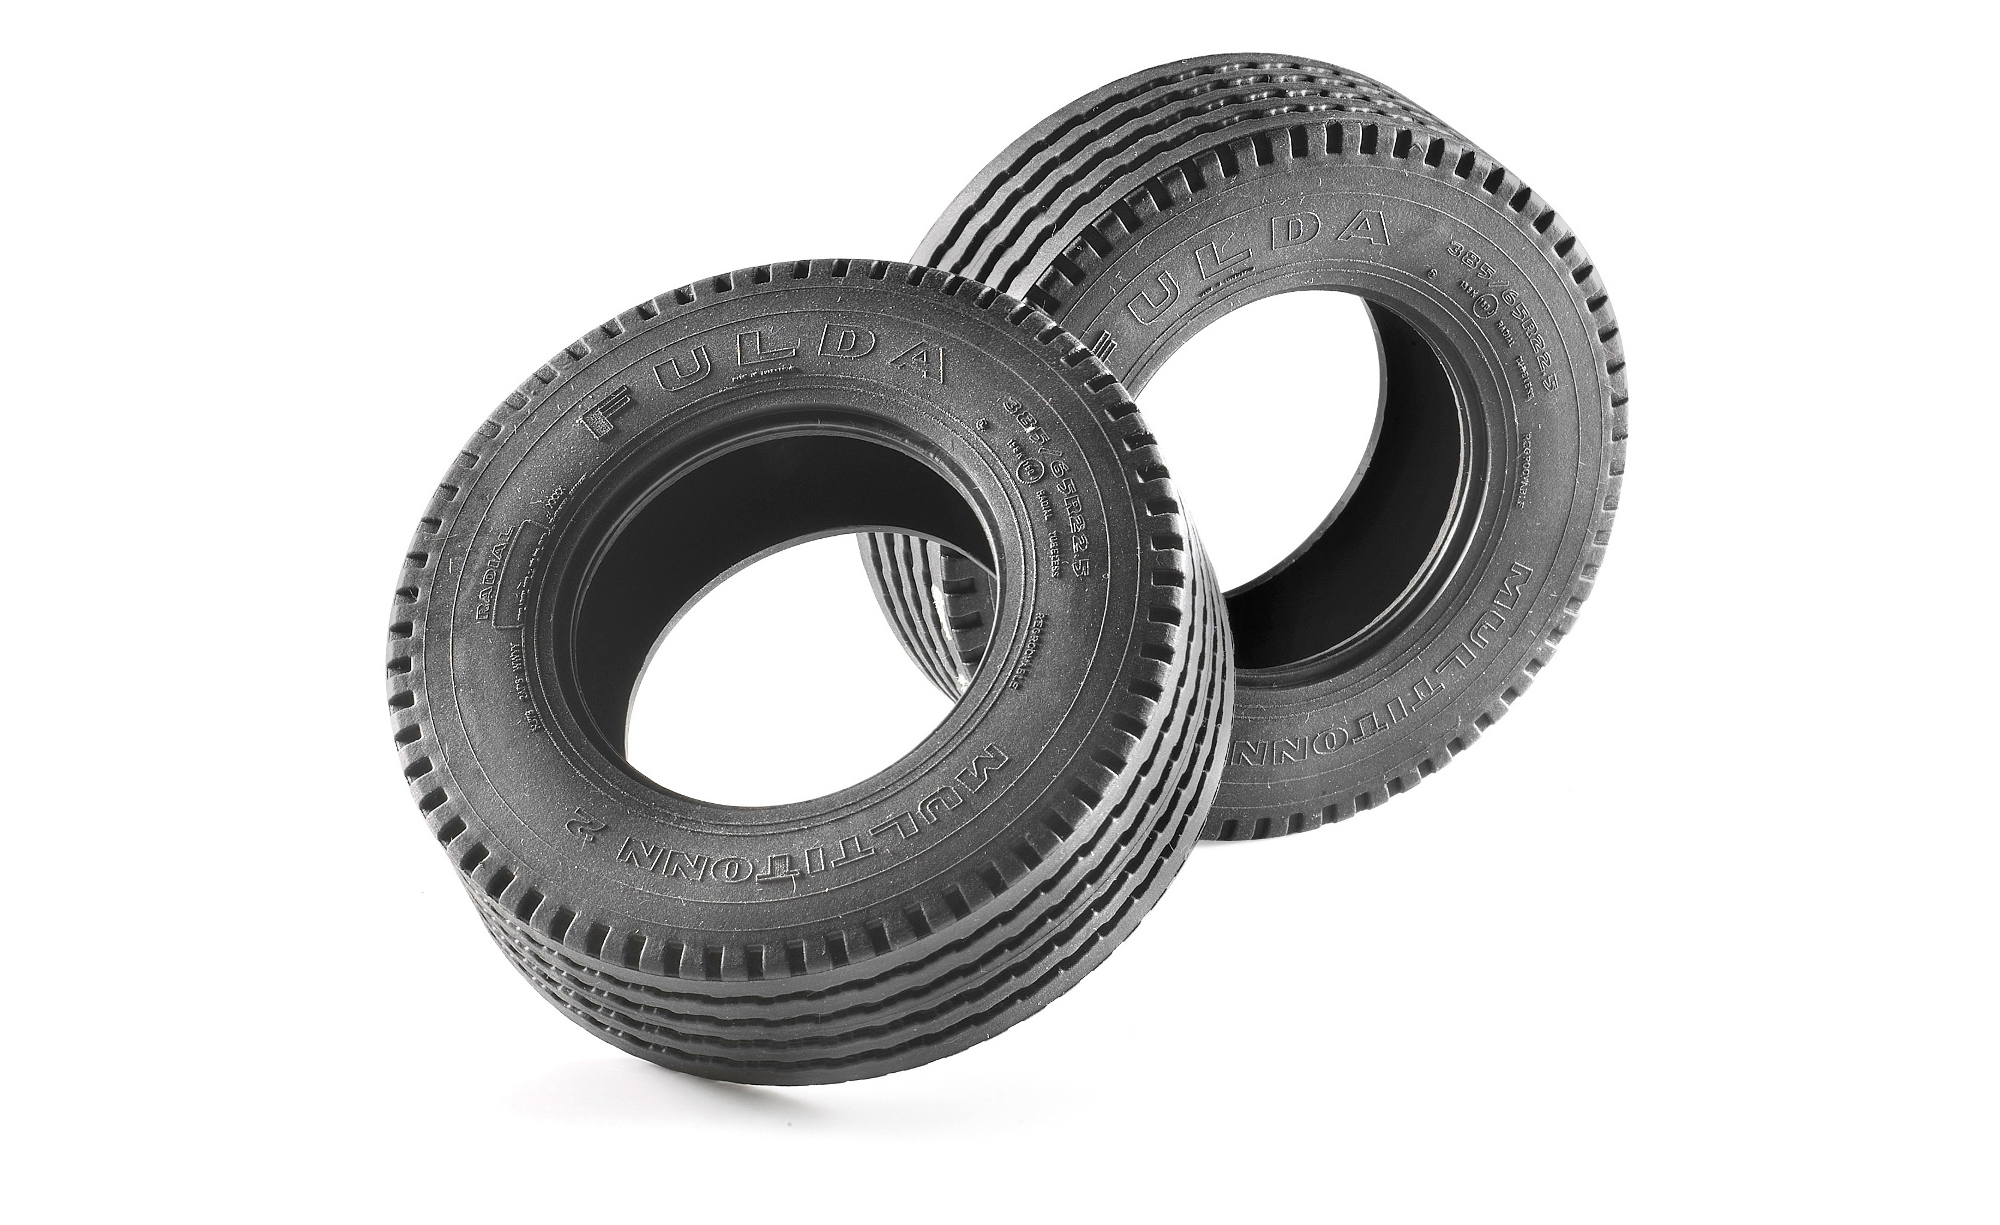 Carson 1:14 Fulda Multitonn 2 Tire Wide (2)   C907012